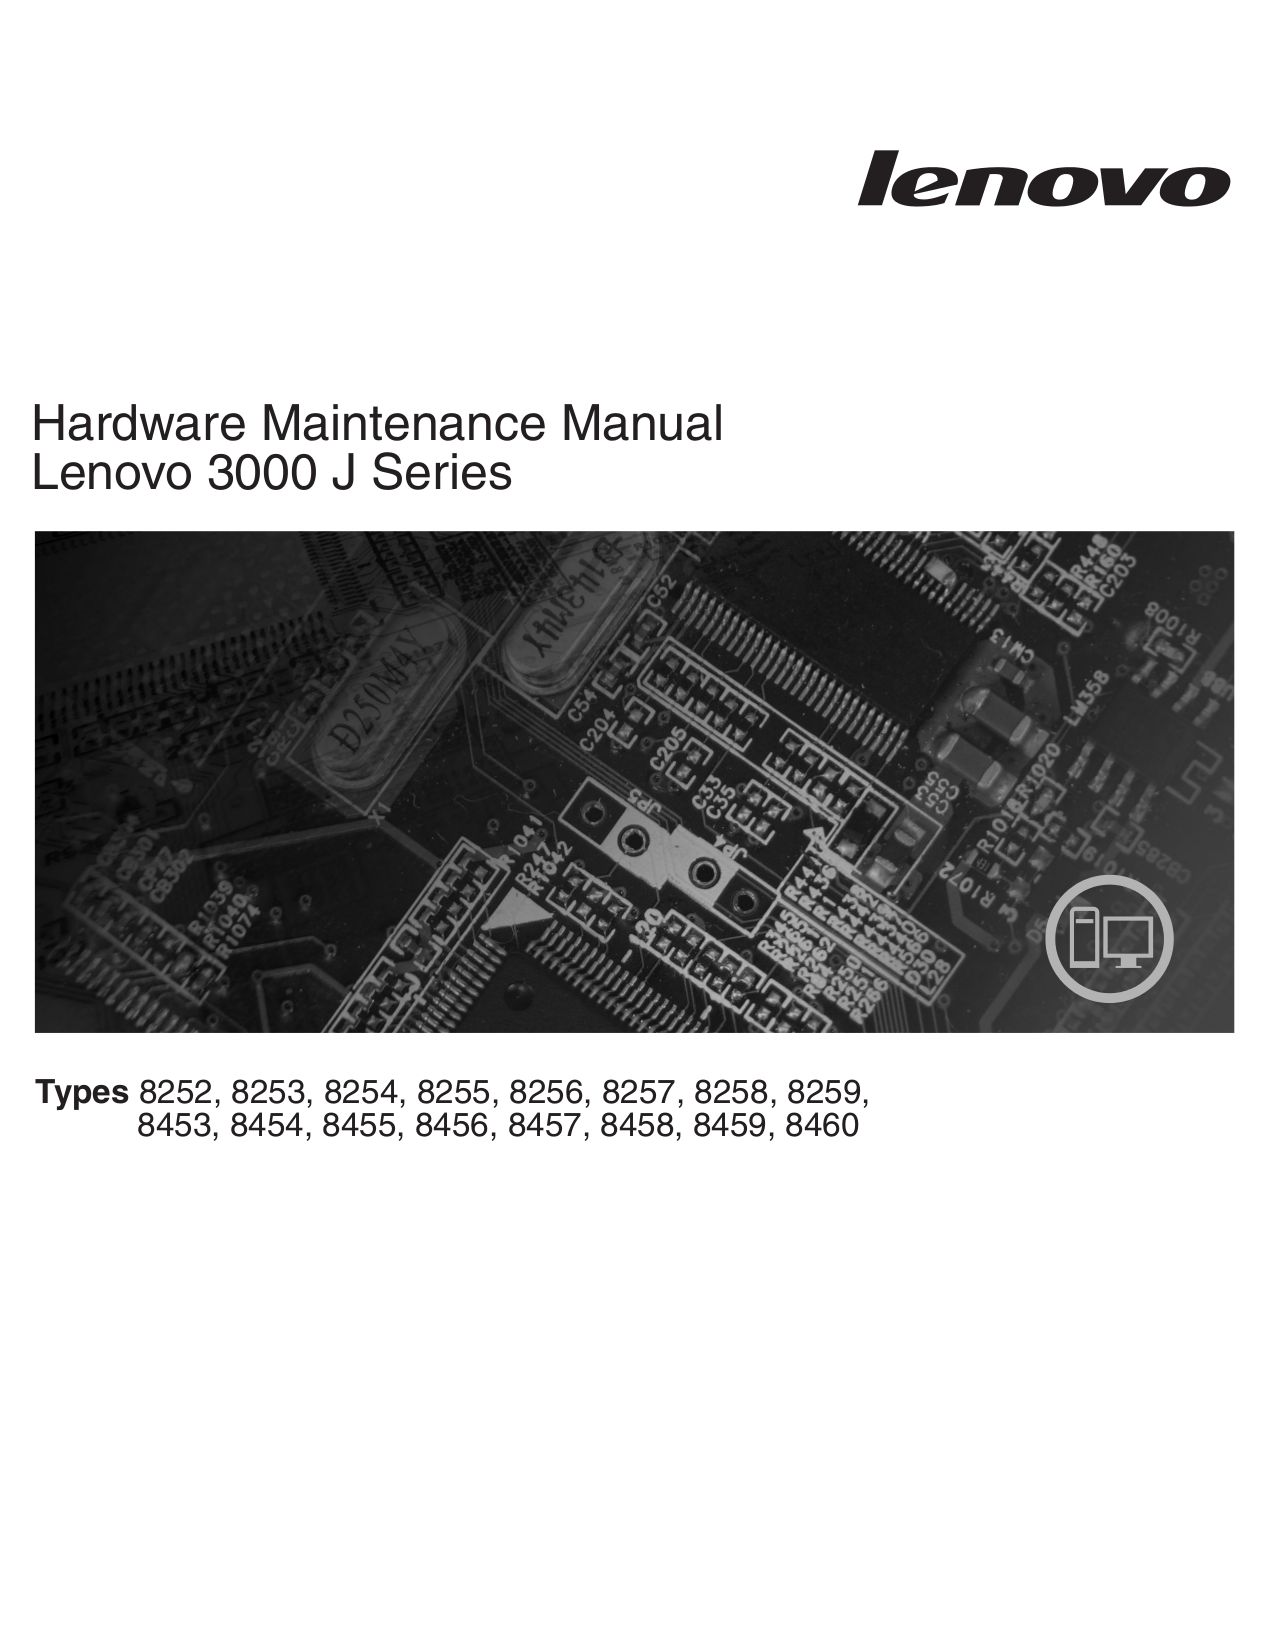 pdf for Lenovo Desktop 3000 J105 8259 manual